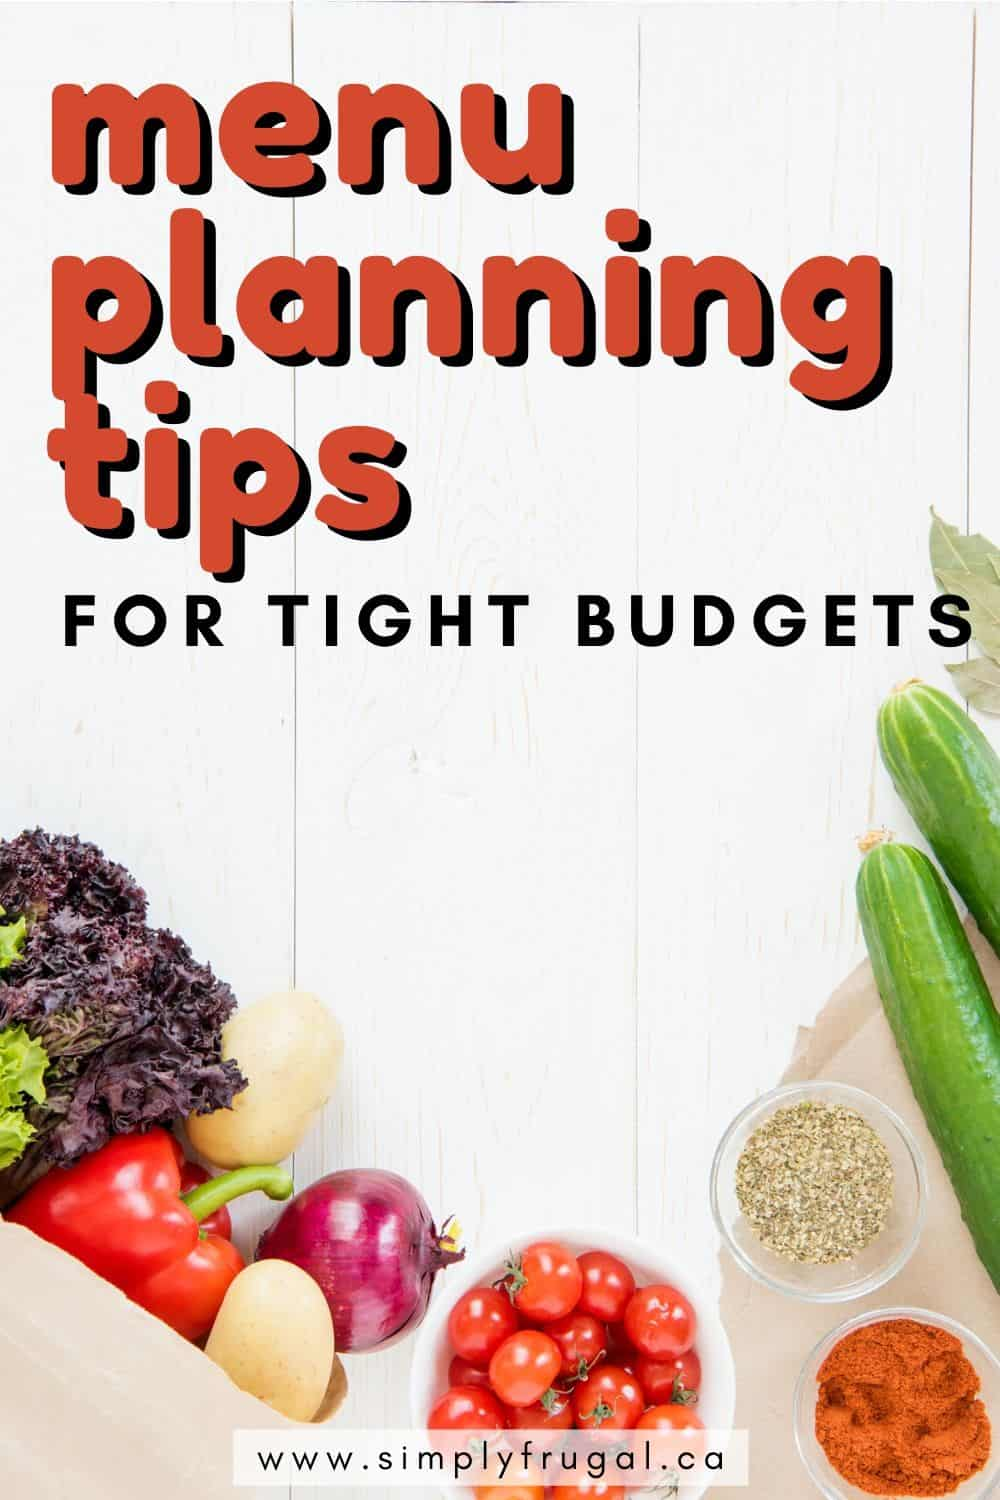 Menu planning tips for tight budgets